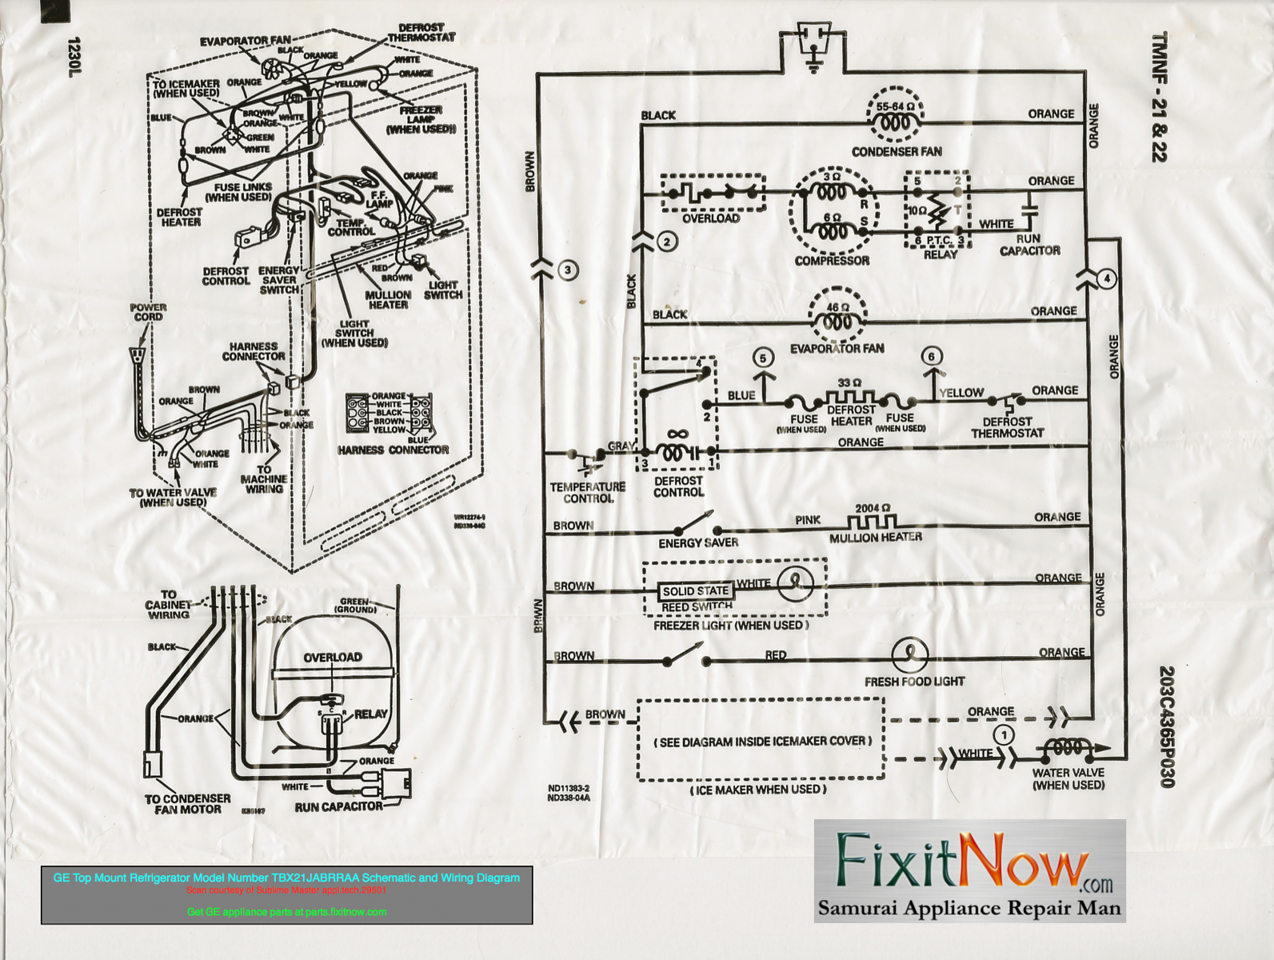 Wiring Diagrams And Schematics Appliantology. Ge Top Mount Refrigerator Model Number Tbx21jabrraa Schematic And Wiring Diagram. Wiring. Stove Ladder Wiring Diagram At Scoala.co